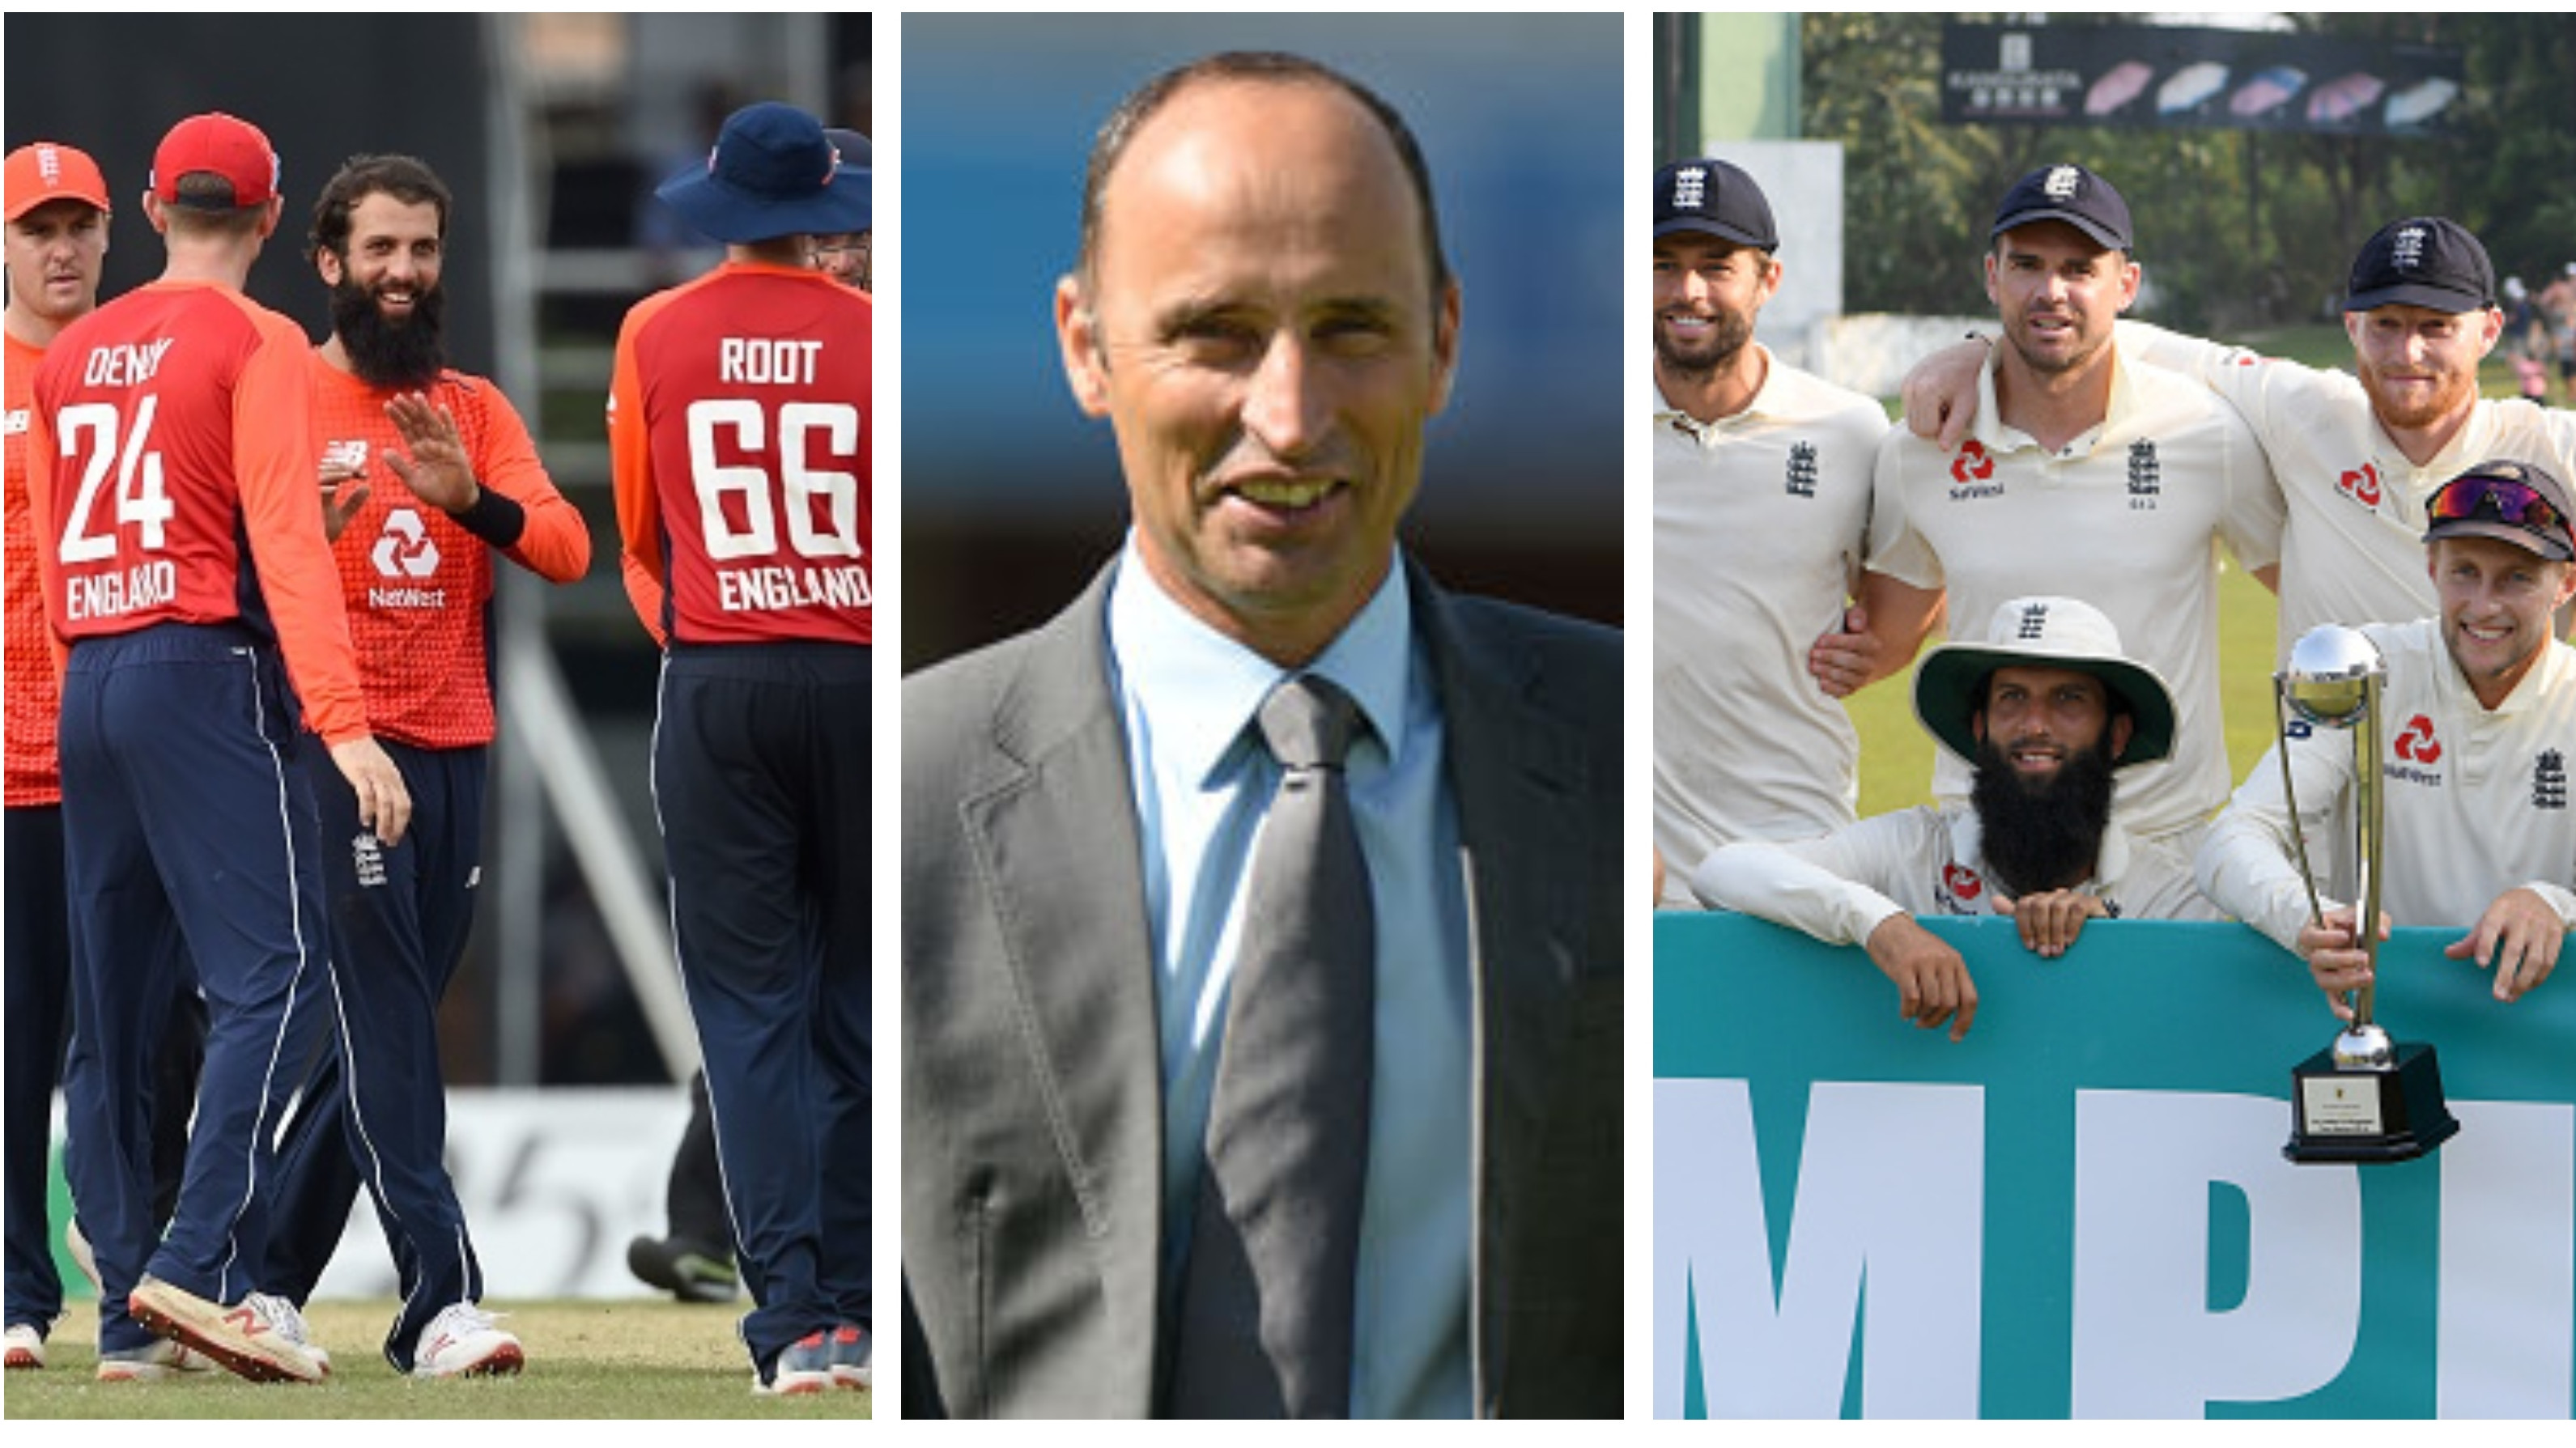 Nasser Hussain expects England to win the World Cup and Ashes in 2019